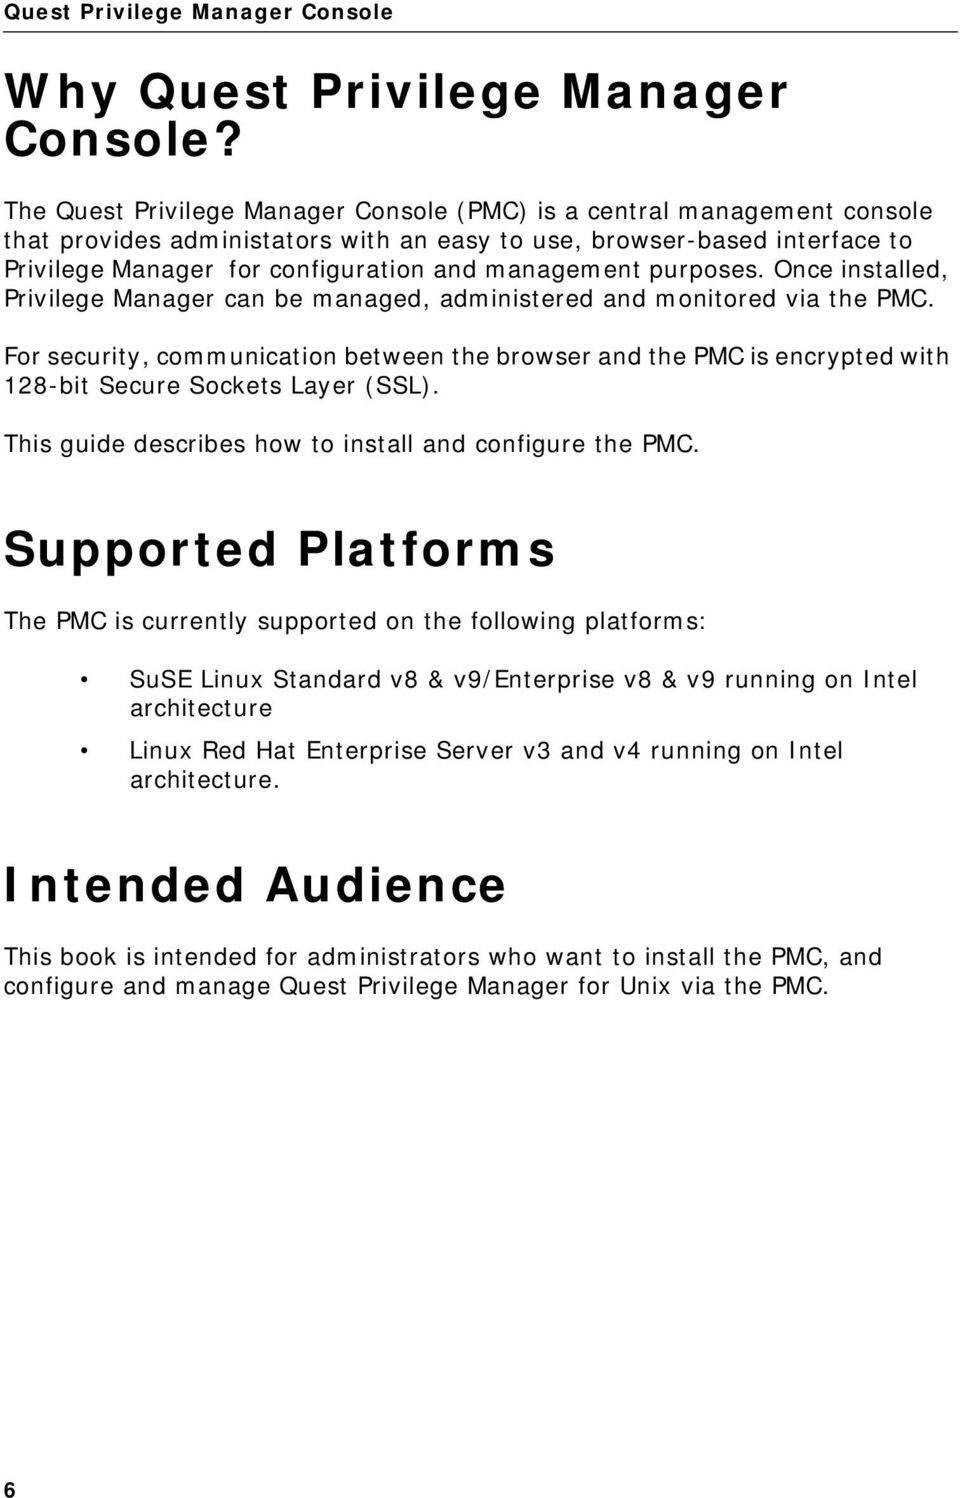 management purposes. Once installed, Privilege Manager can be managed, administered and monitored via the PMC.